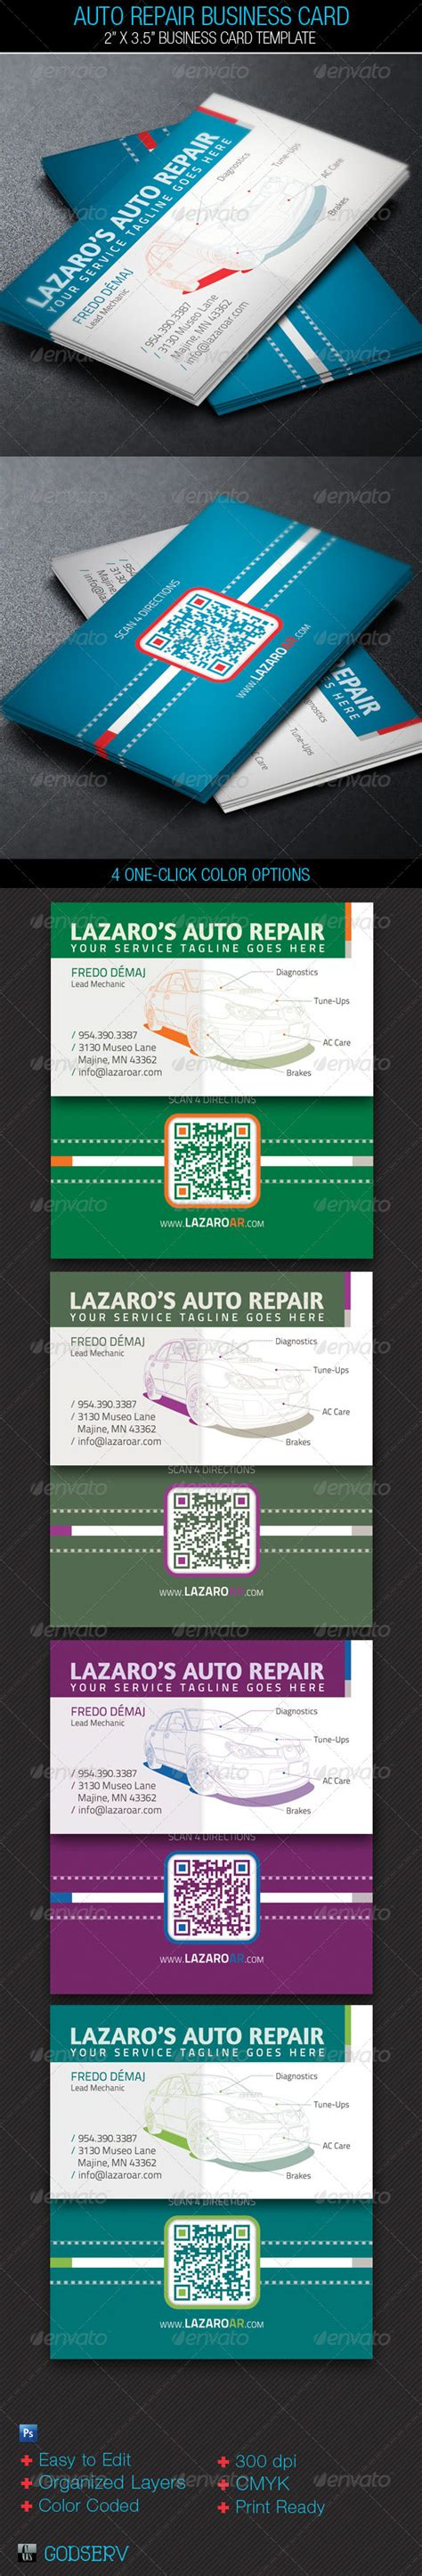 service card template auto repair service business card template on behance